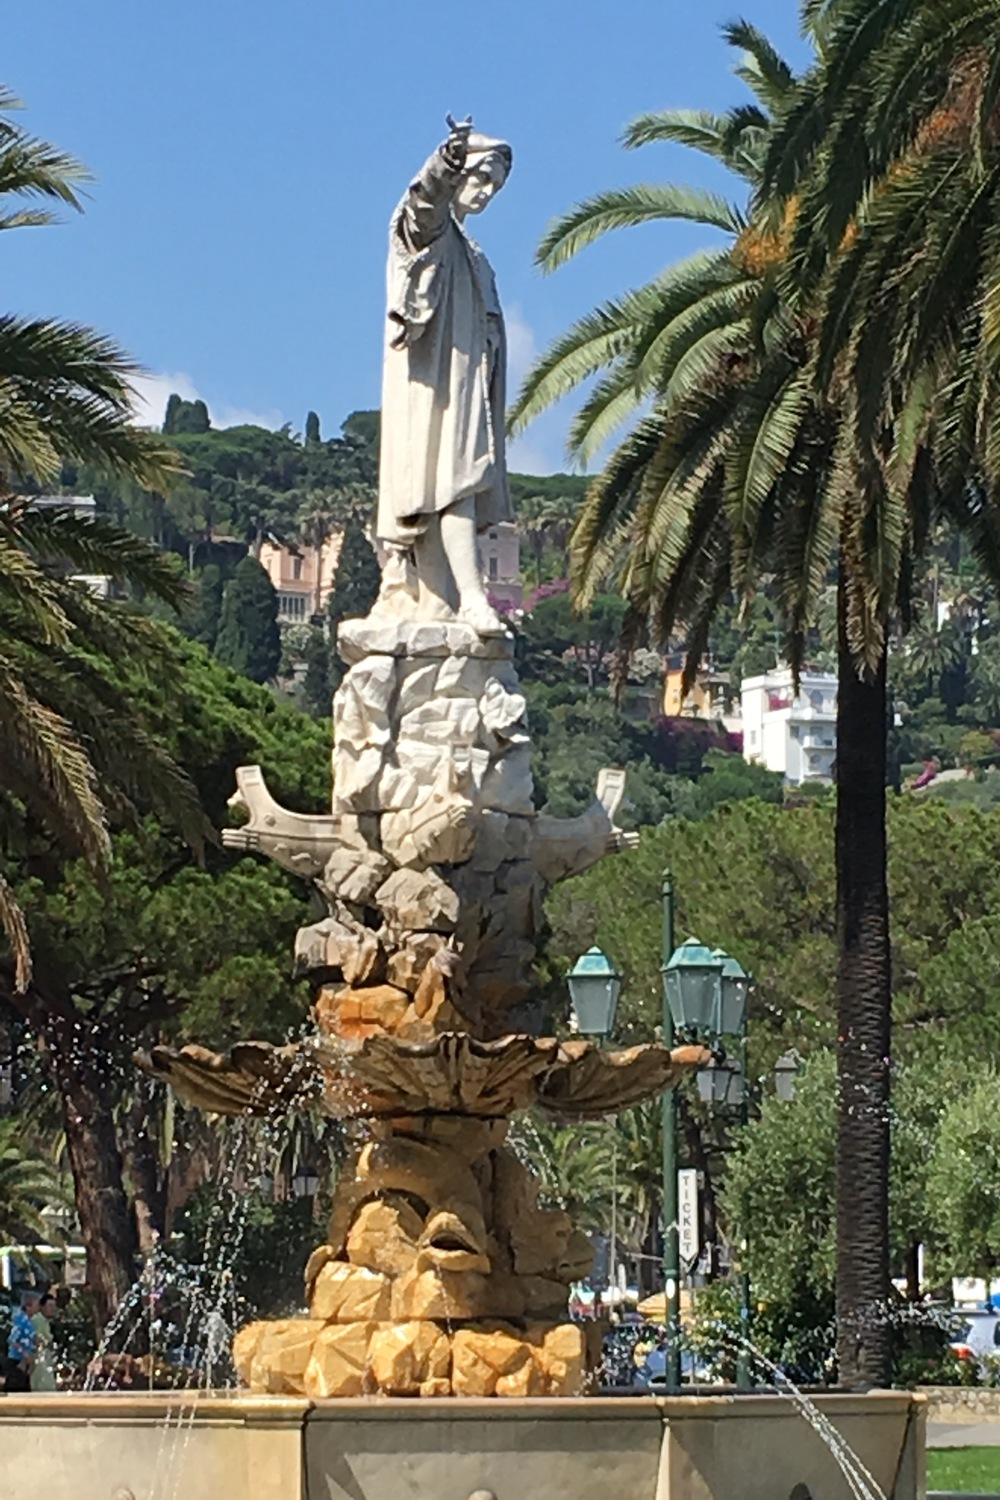 statue in Santa Margherita Ligure, Italy